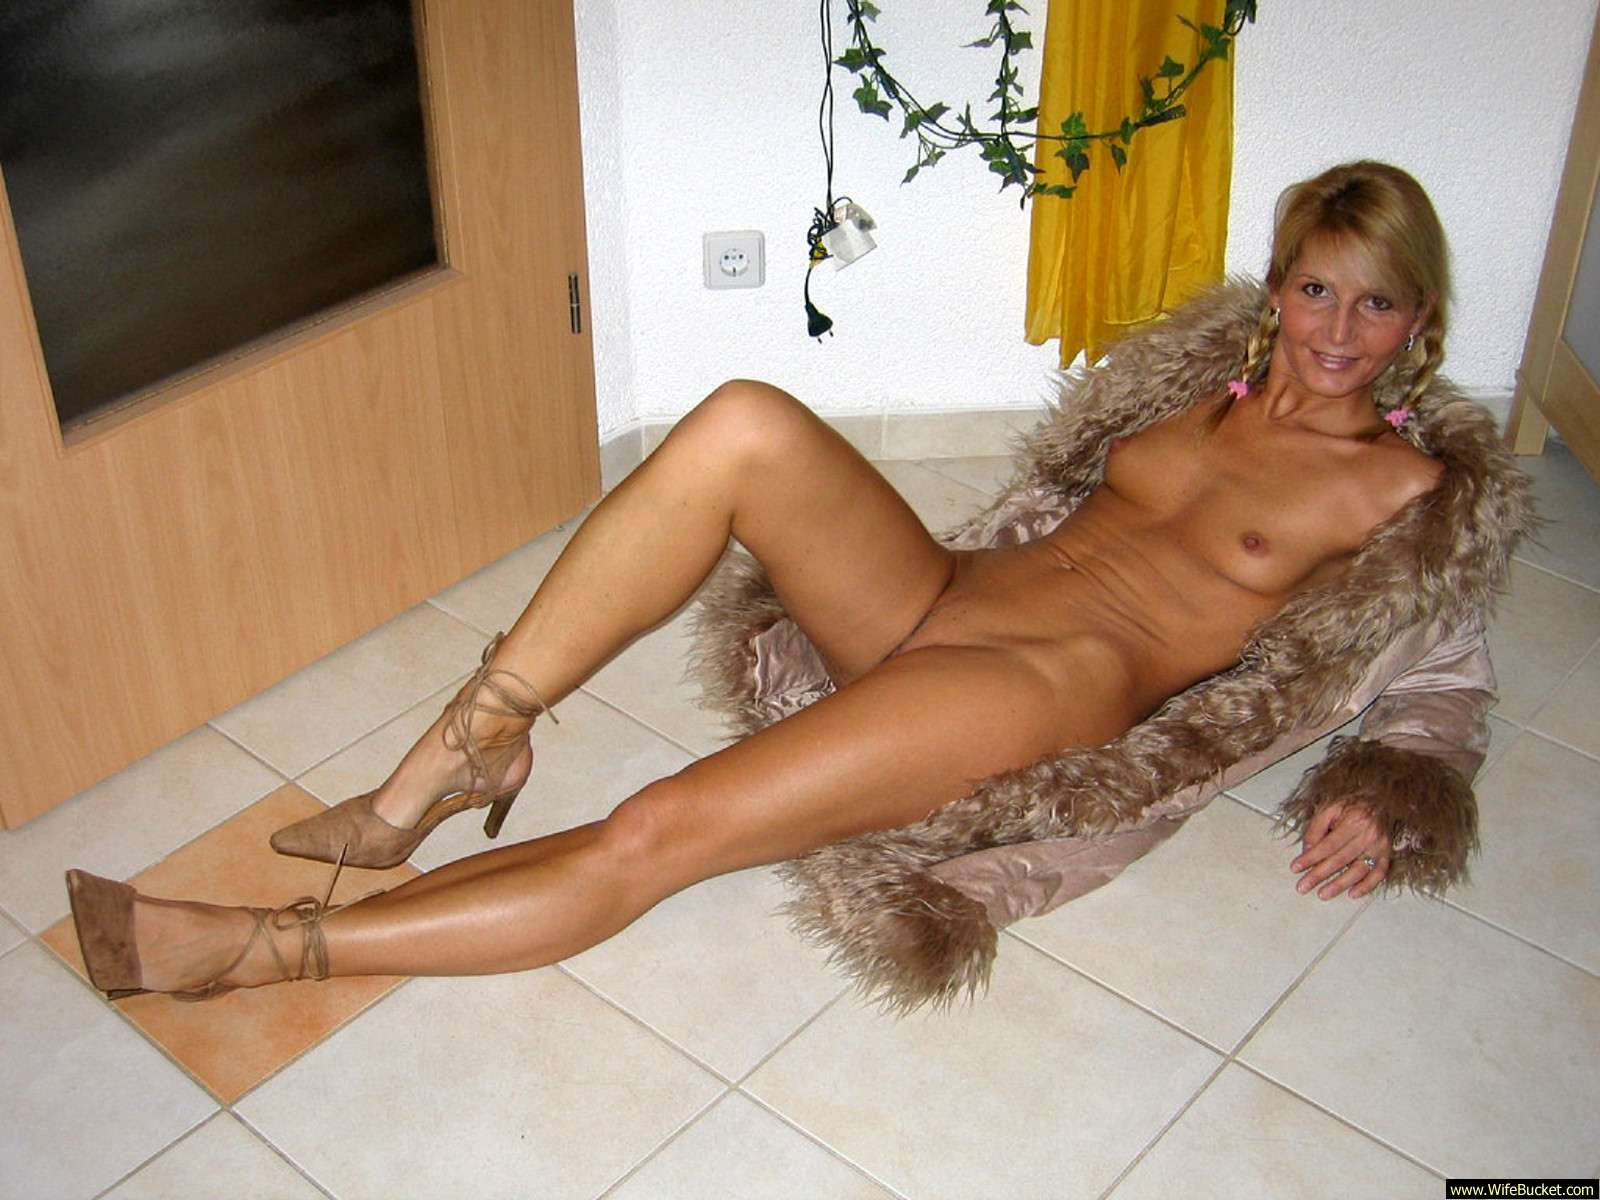 Shaved pussy picture galleries